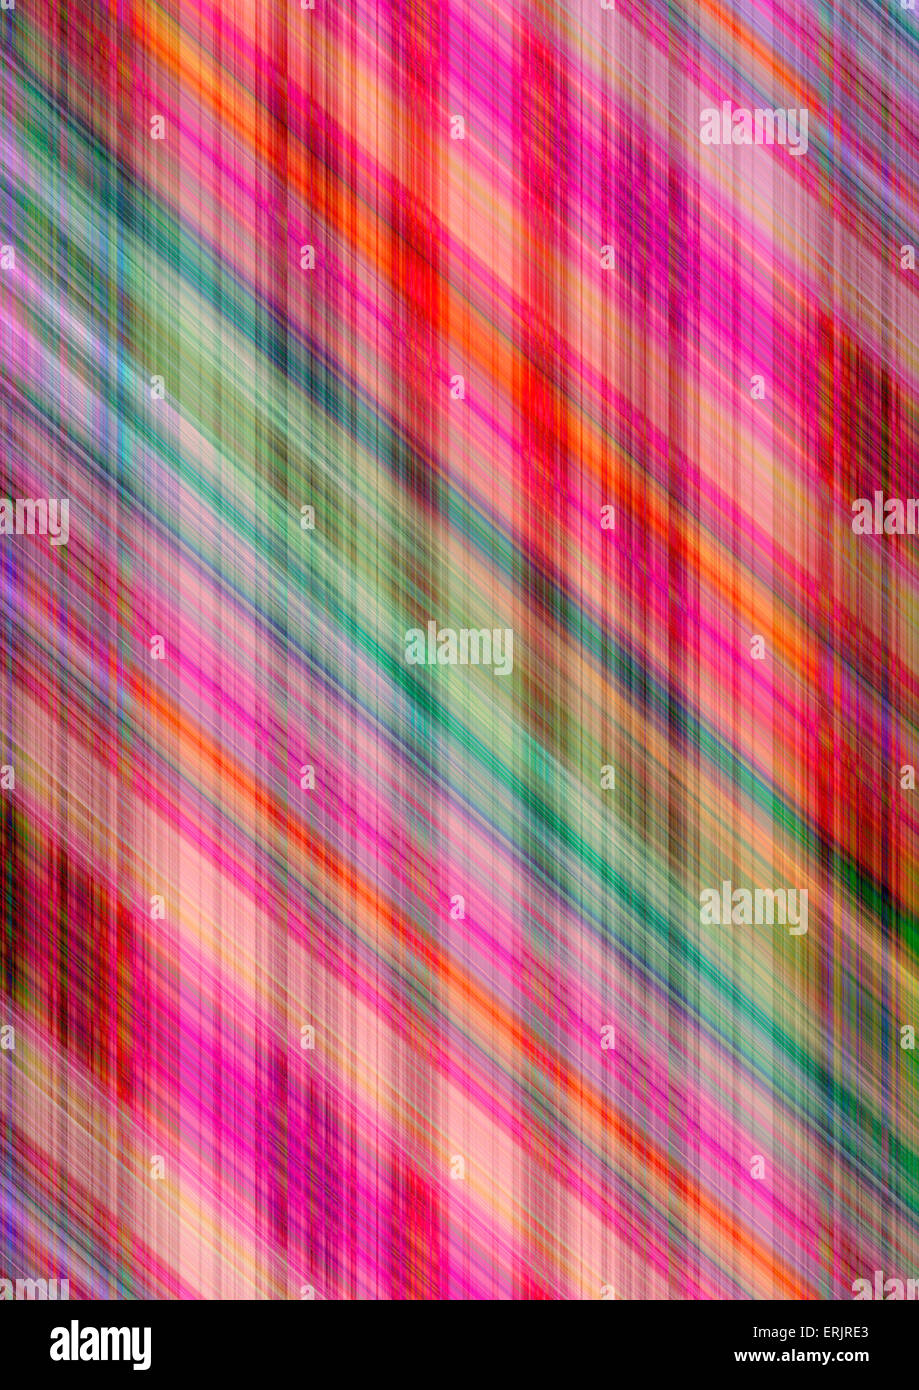 Striped colored background covered with bright oblique lines - Stock Image